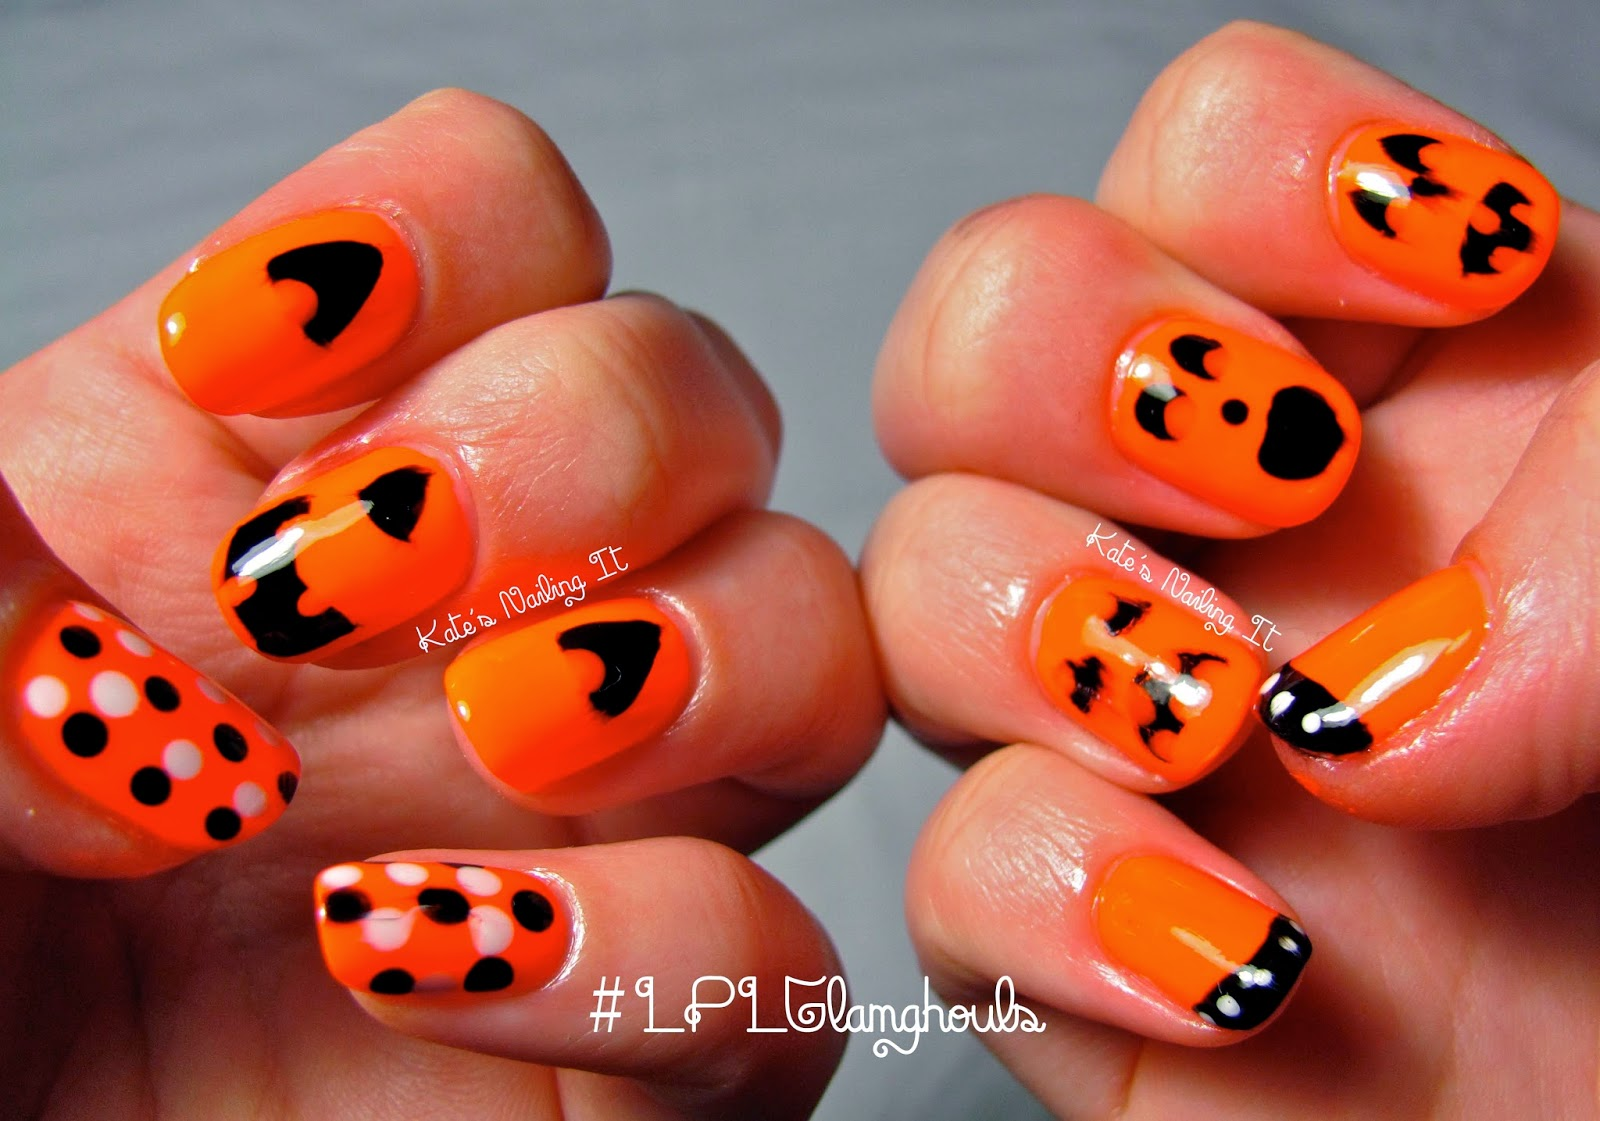 Kate\'s Nailing It: LPL Glamghouls Day 7: Jack O\' Lanterns